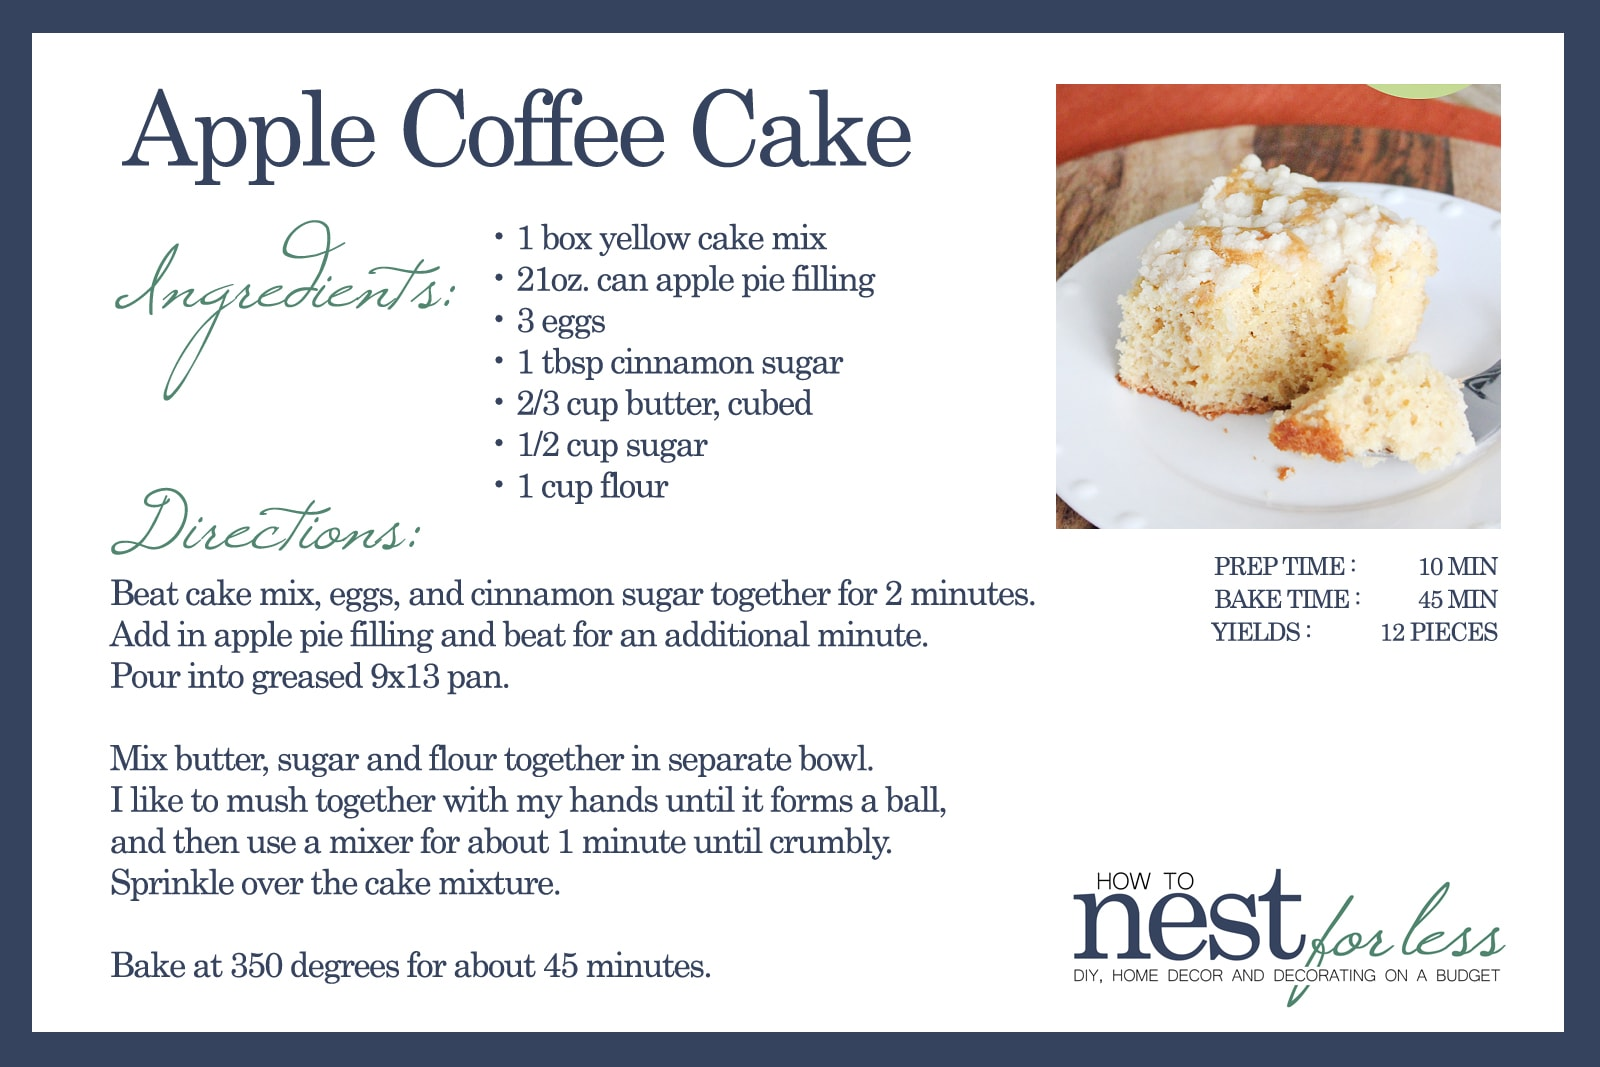 apple coffee cake recipe card